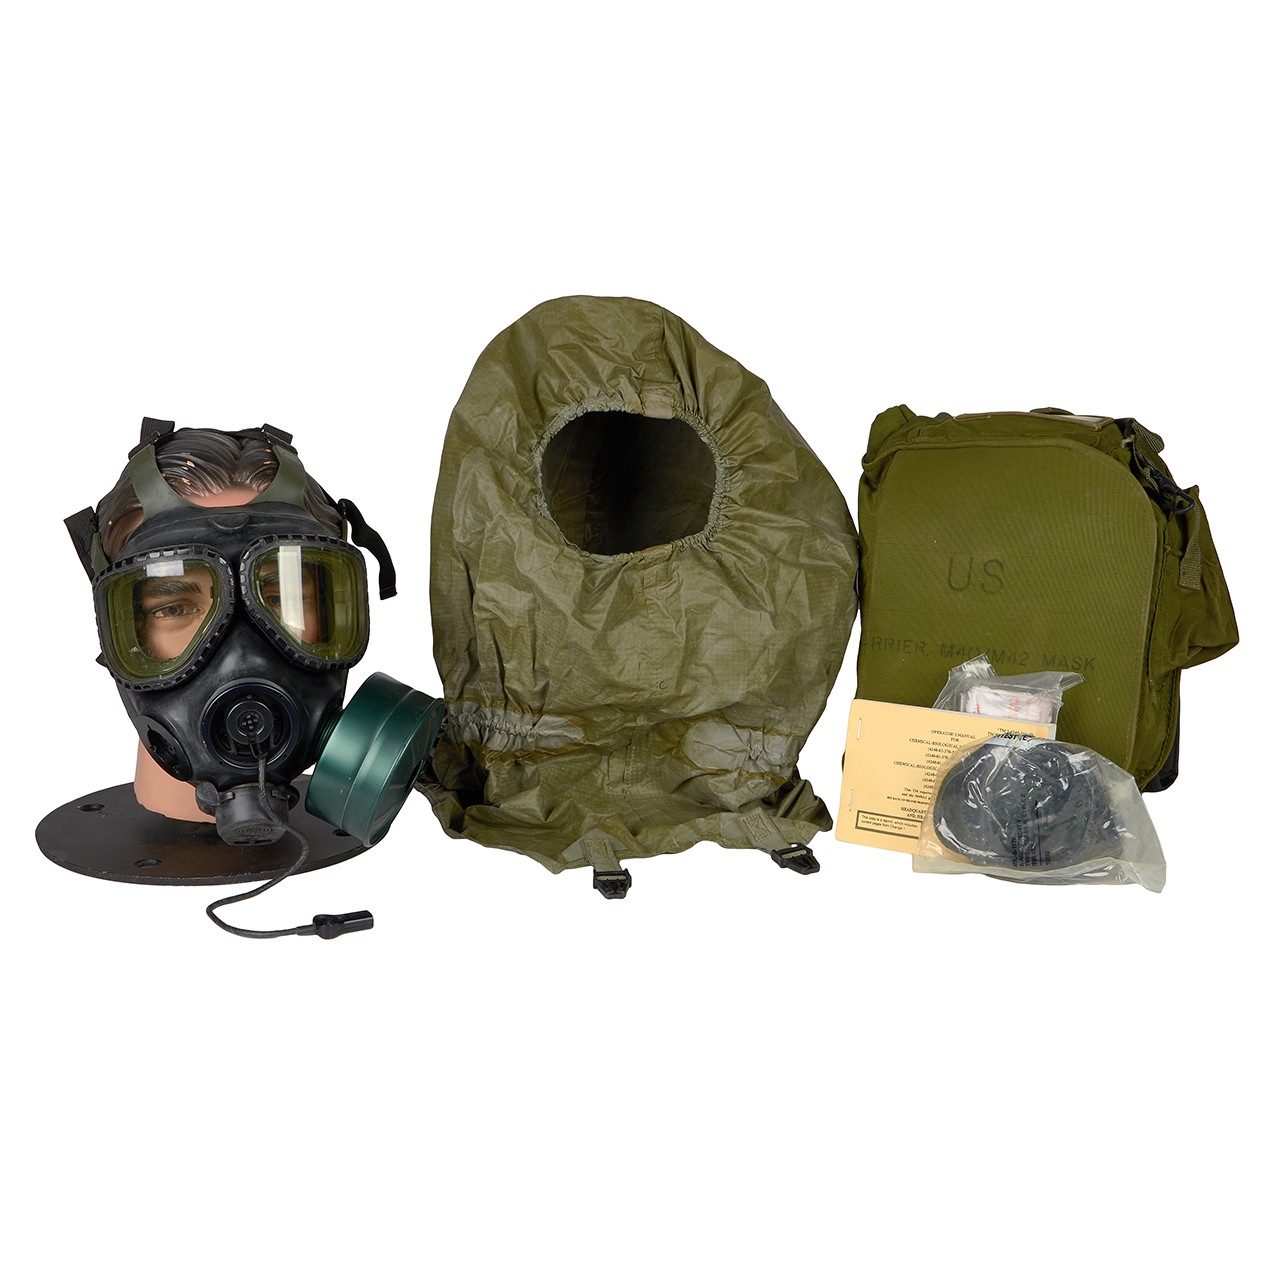 GM72 M40 SERIES G.I. ISSUE GAS MASK